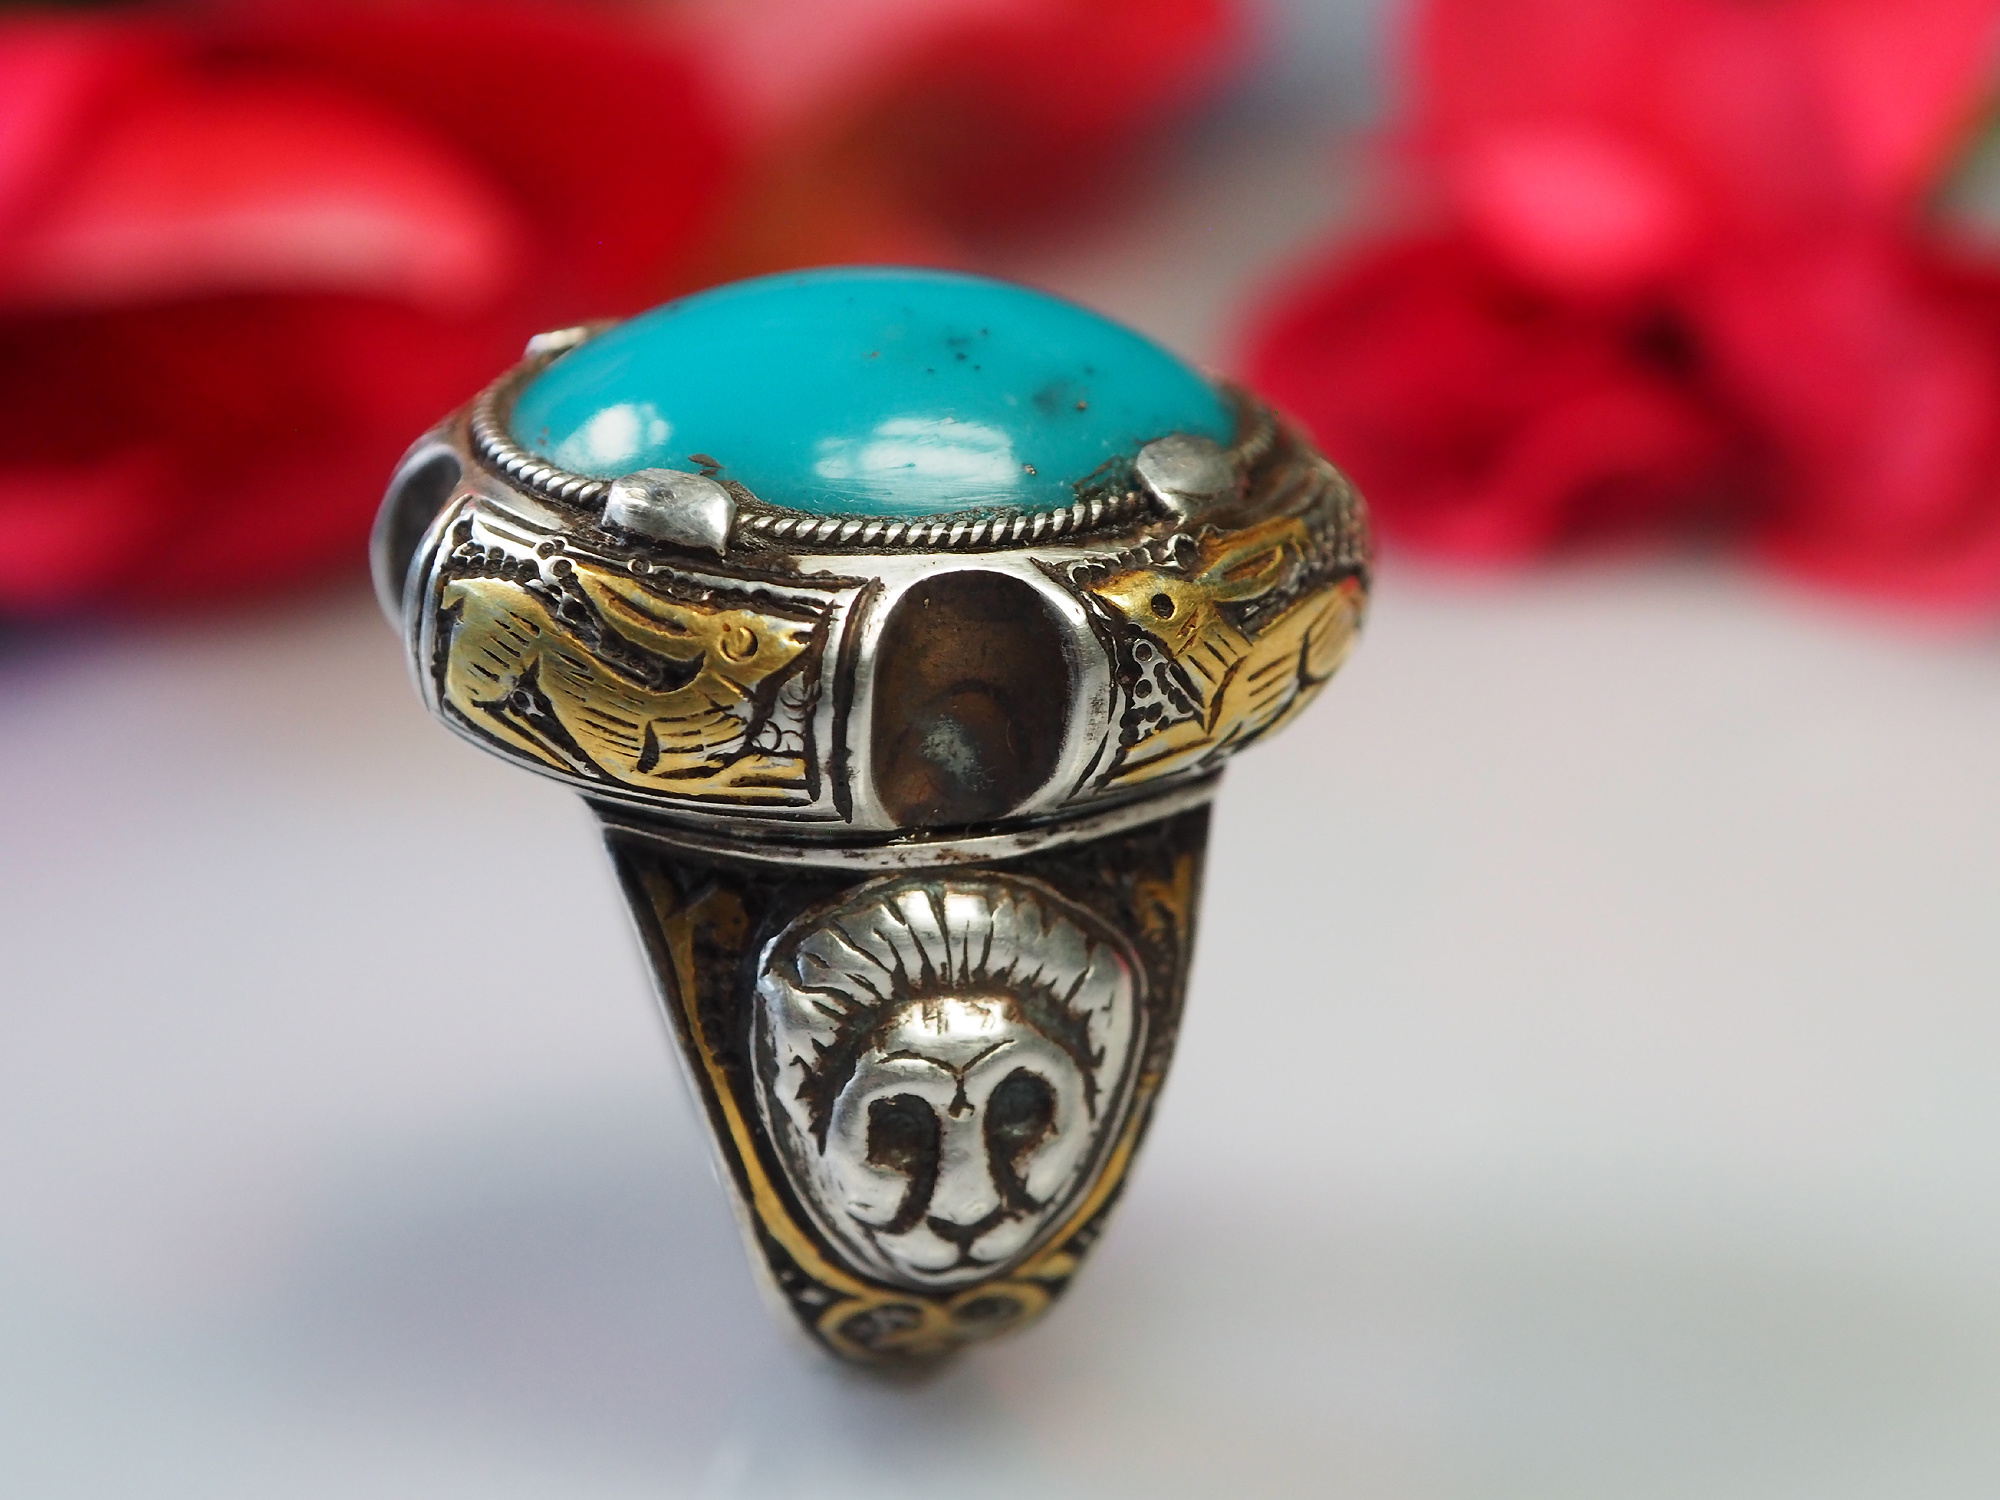 handmade Silver turquoise stone turkmen statement ring from Afghanistan No:468